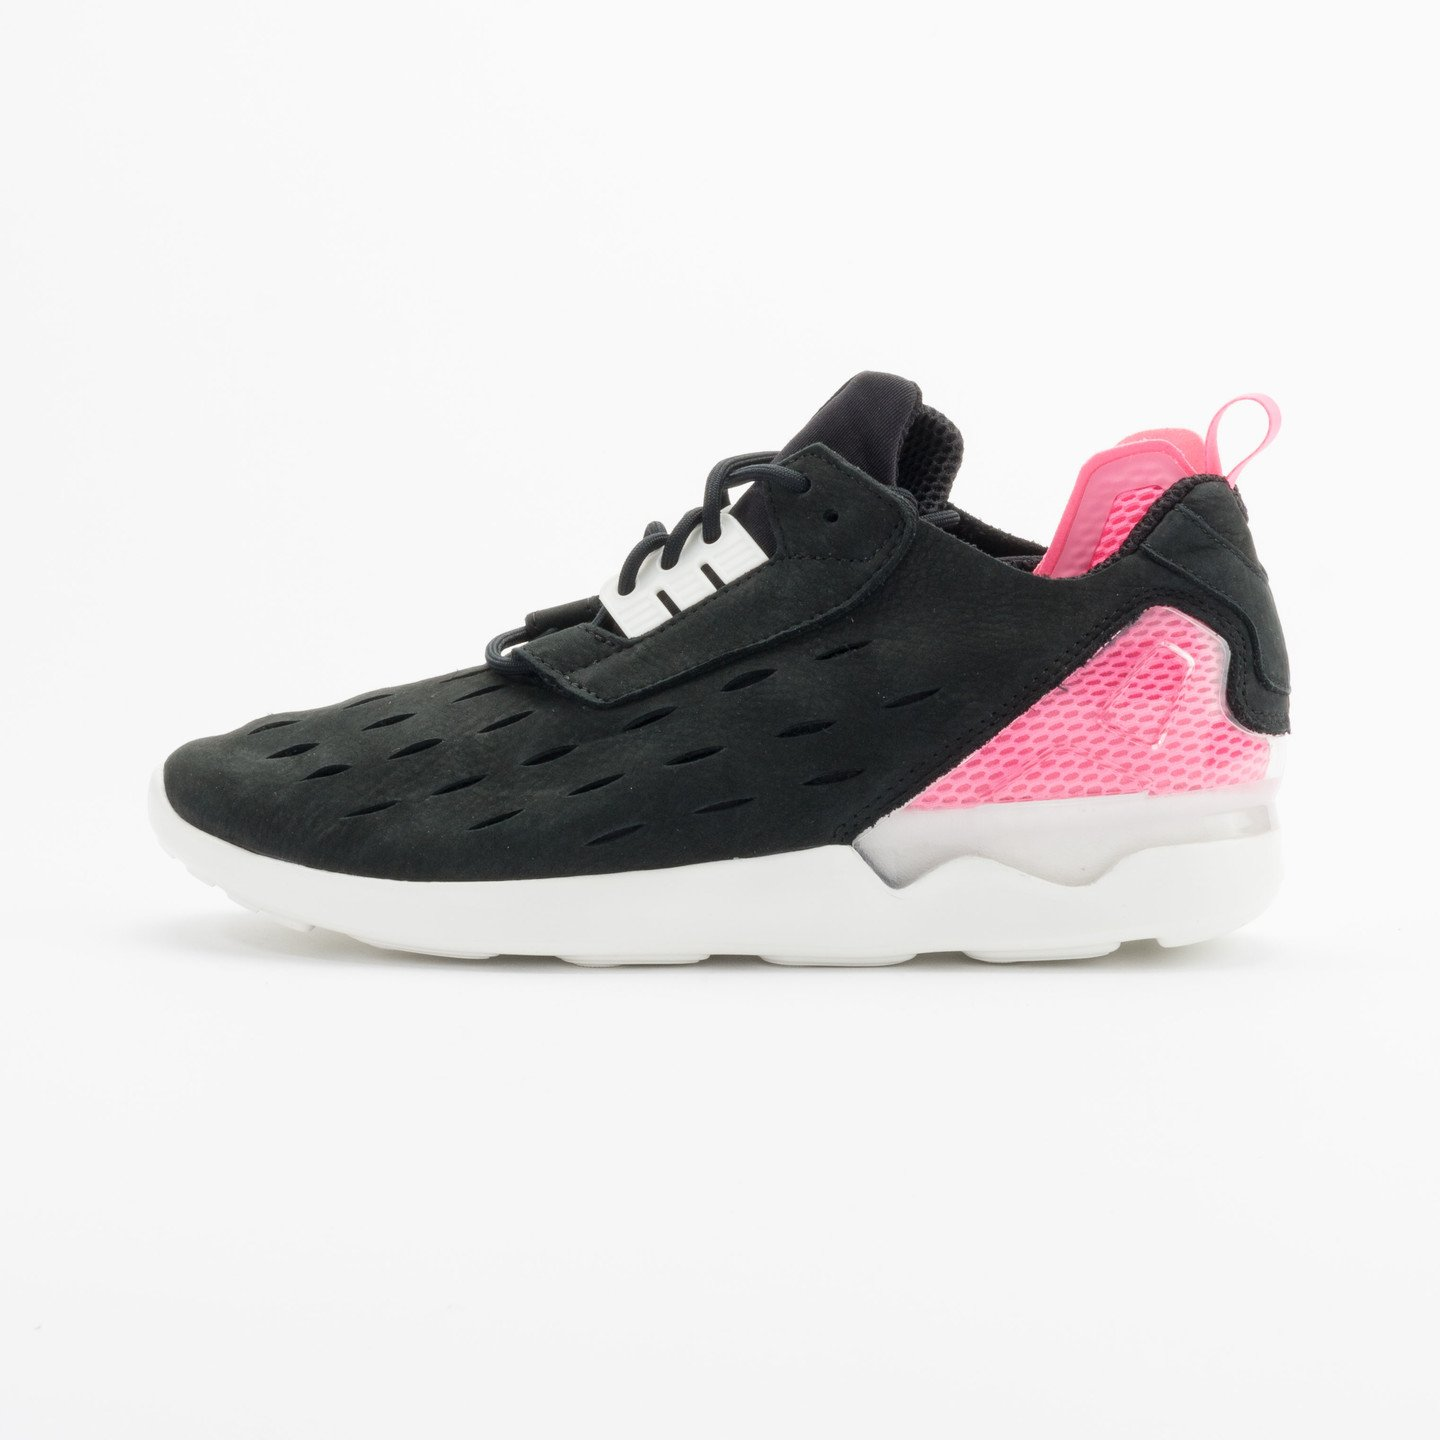 Adidas ZX 8000 Blue Boost Black/Hot-Pink/White B25872-46